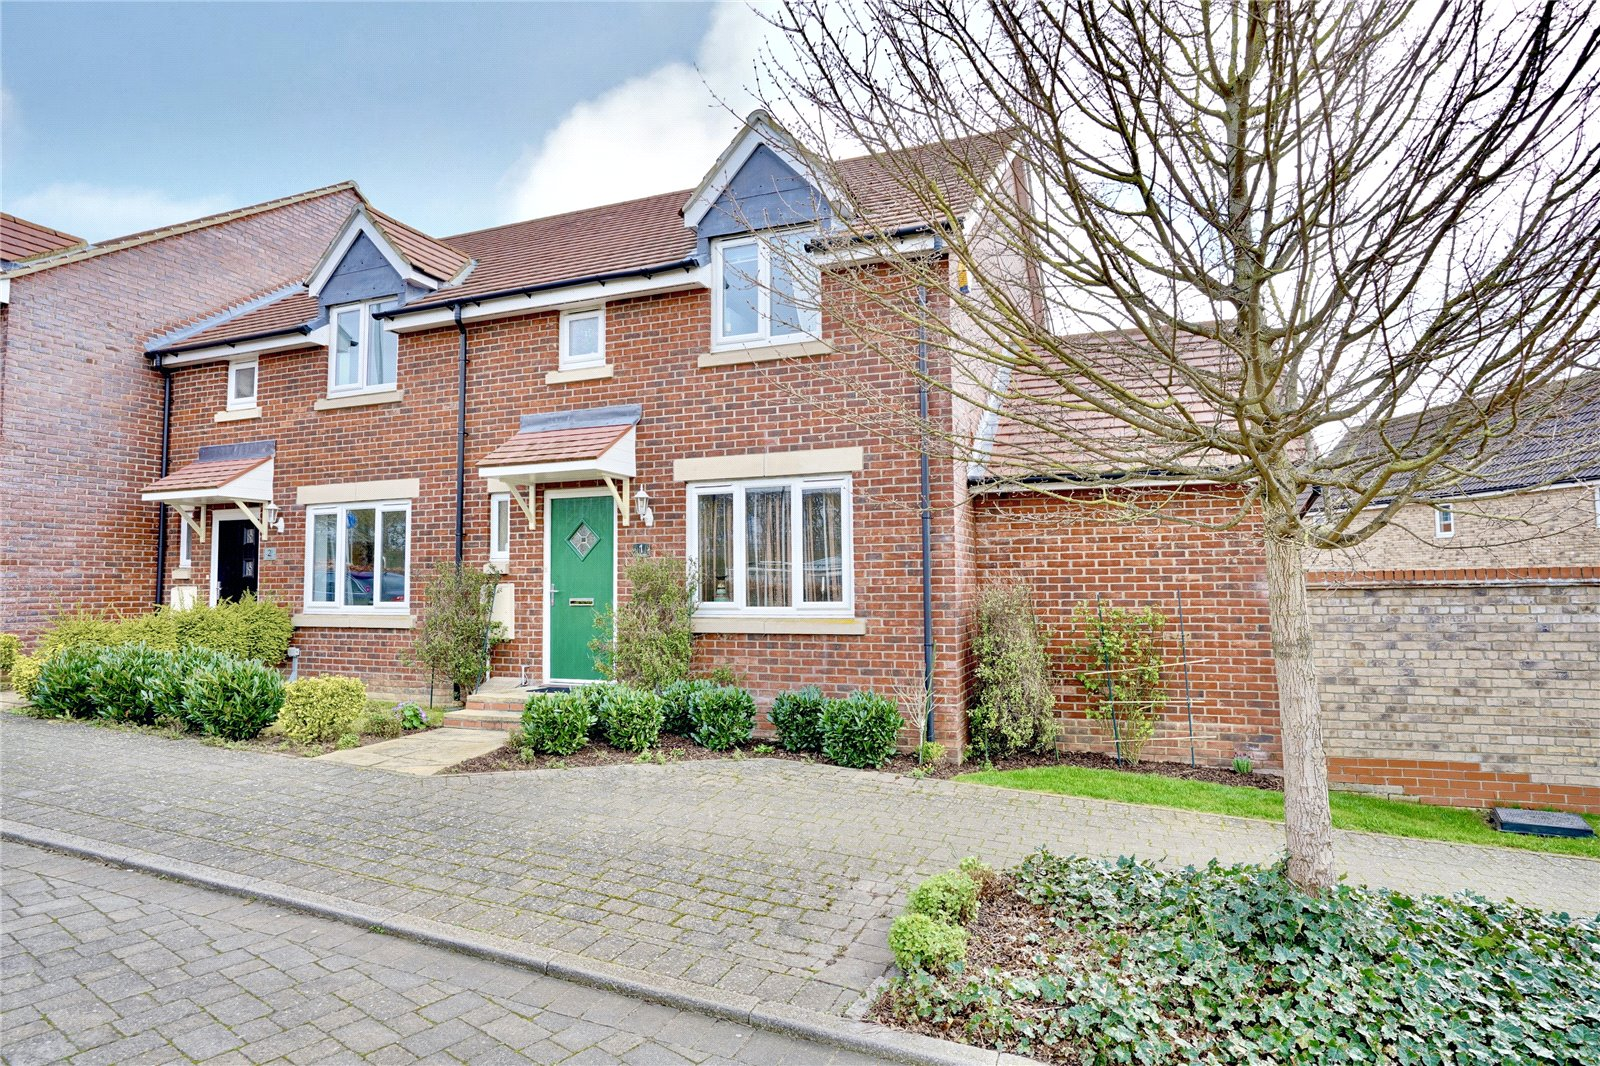 3 bed house for sale in St. Neots, PE19 6BD, PE19